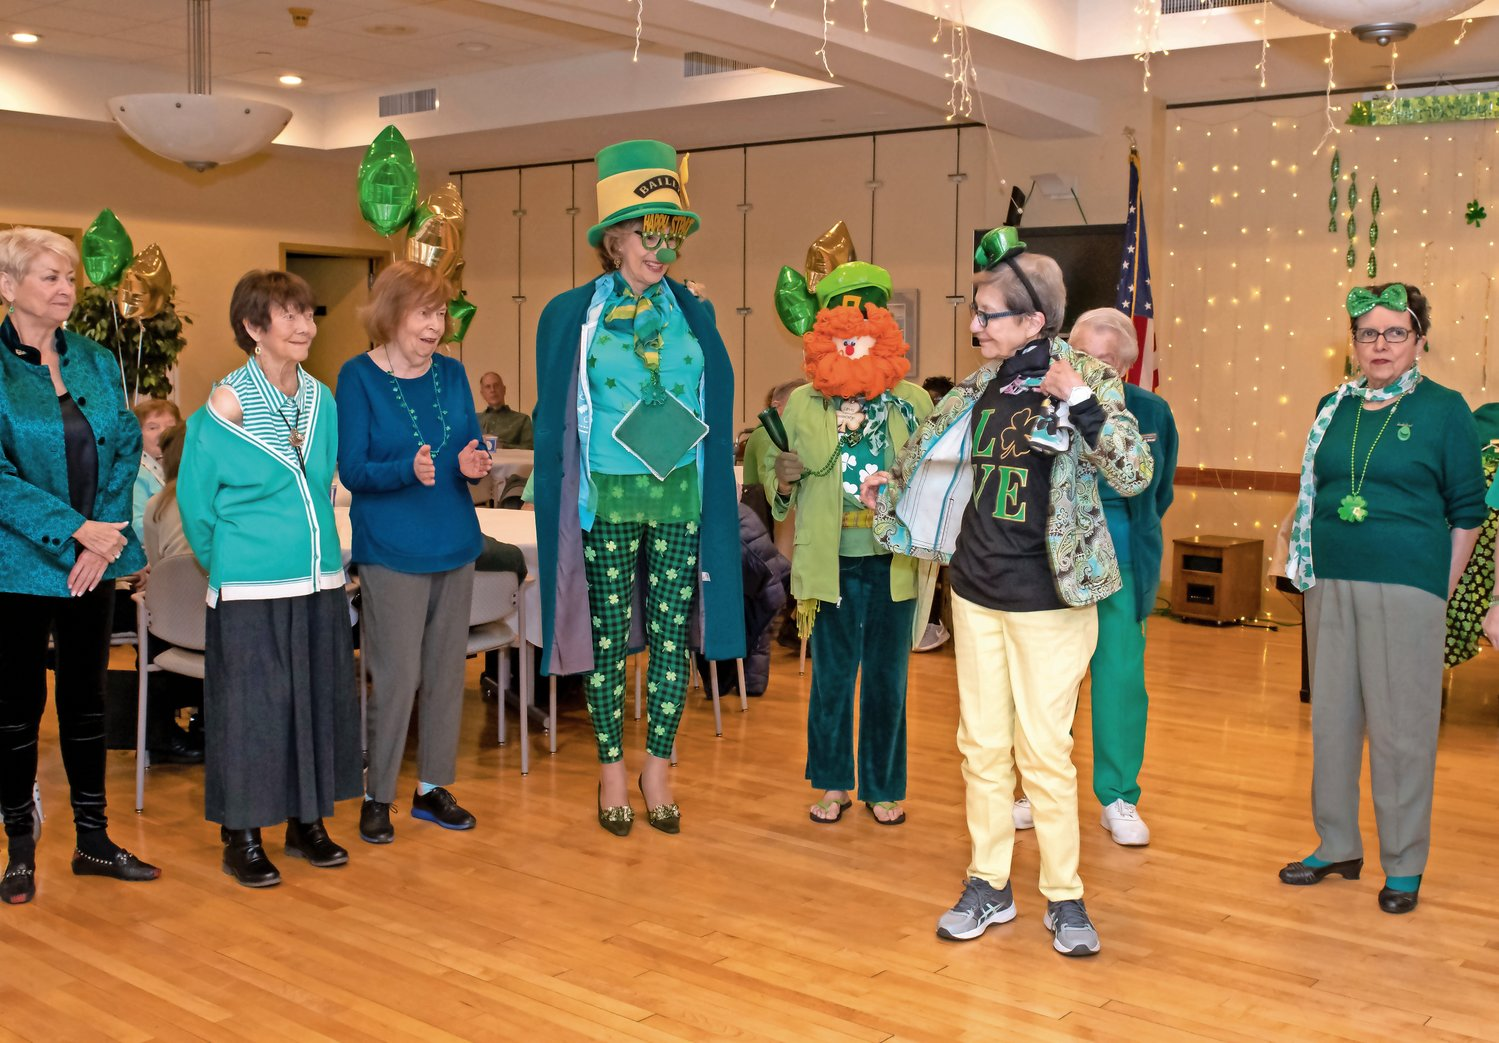 The Life Enrichment Center of Oyster Bay had one last party for St. Patrick's Day before it was closed along with all senior centers because of the coronavirus.